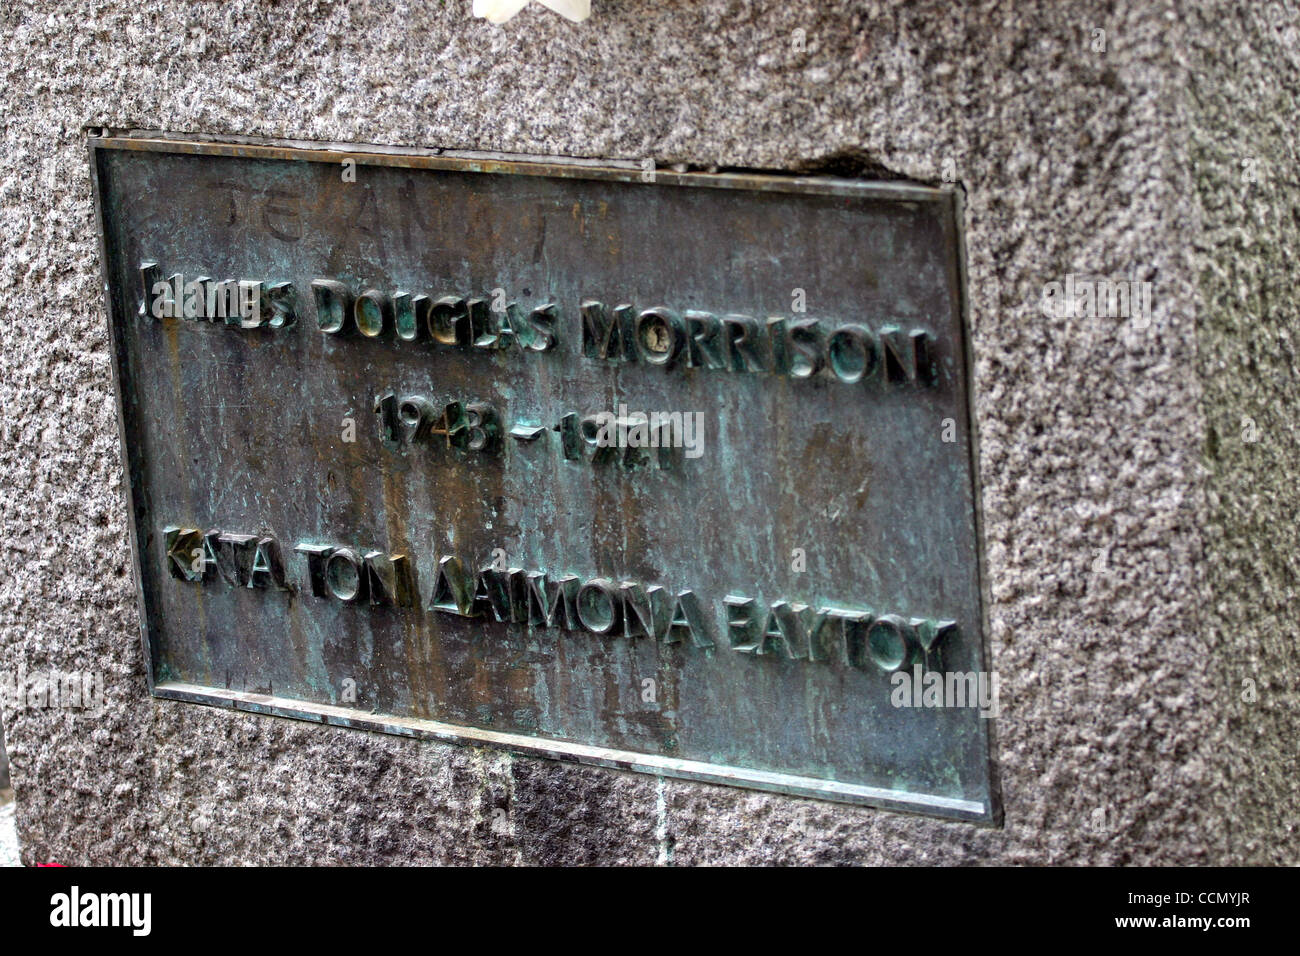 Jul 17 2004; Paris FRANCE; The grave of Doors frontman JIM MORRISON & Grave Doors Frontman Jim Morrison Stock Photos u0026 Grave Doors ...